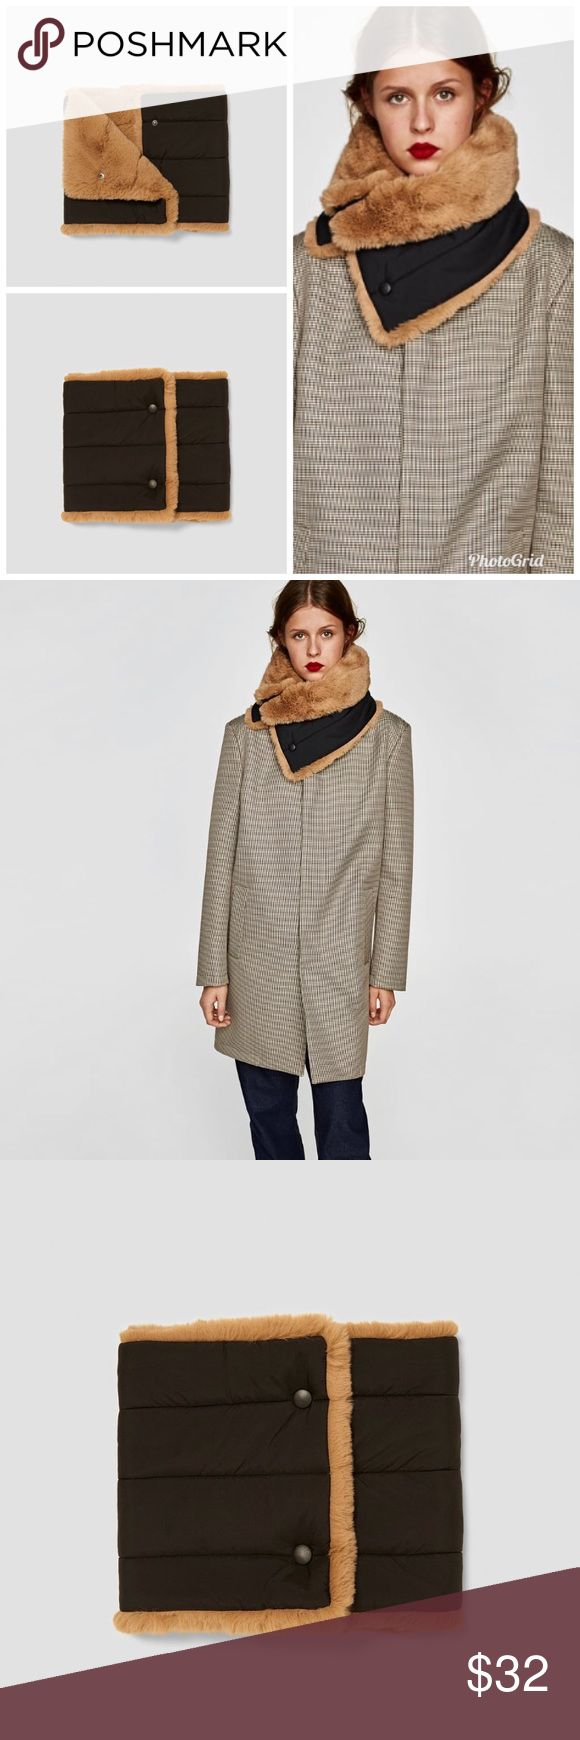 ZARA Reversible Warmer 🧣 Reversible neck warmer in faux fur and quilted fabric. Color: Camel Zara Accessories Scarves & Wraps